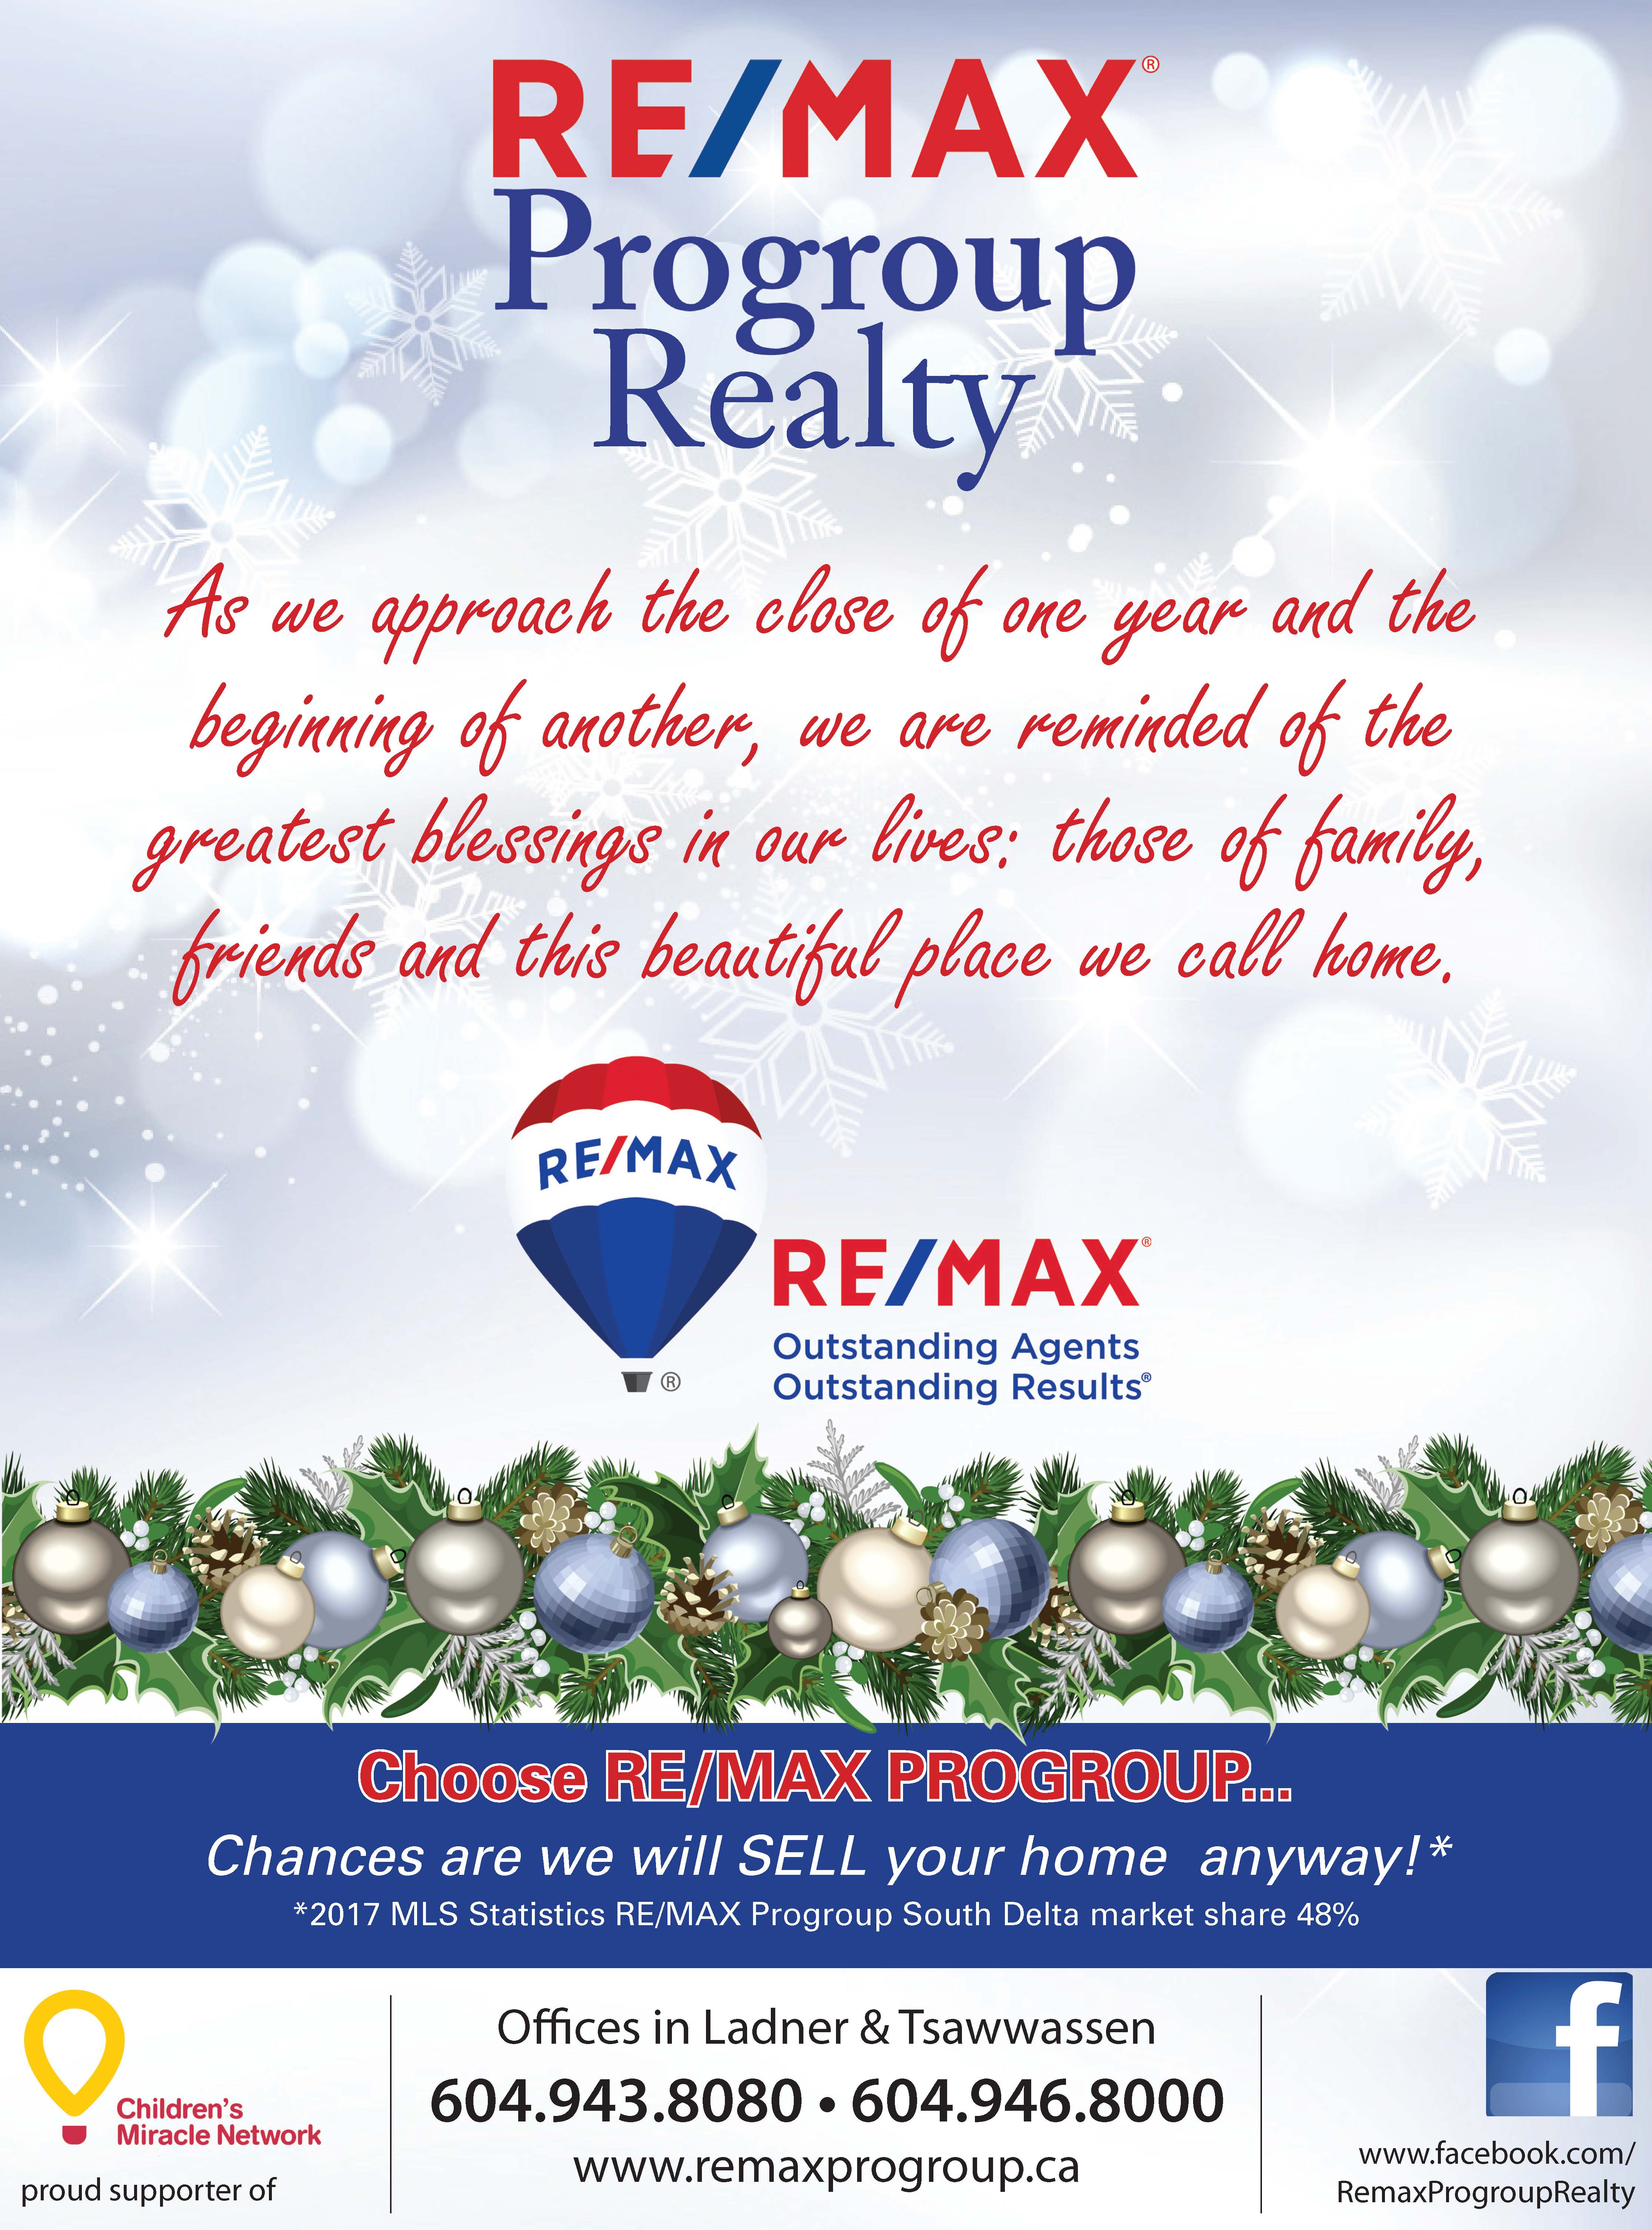 rmx progroup xmas pg 1 dec 20